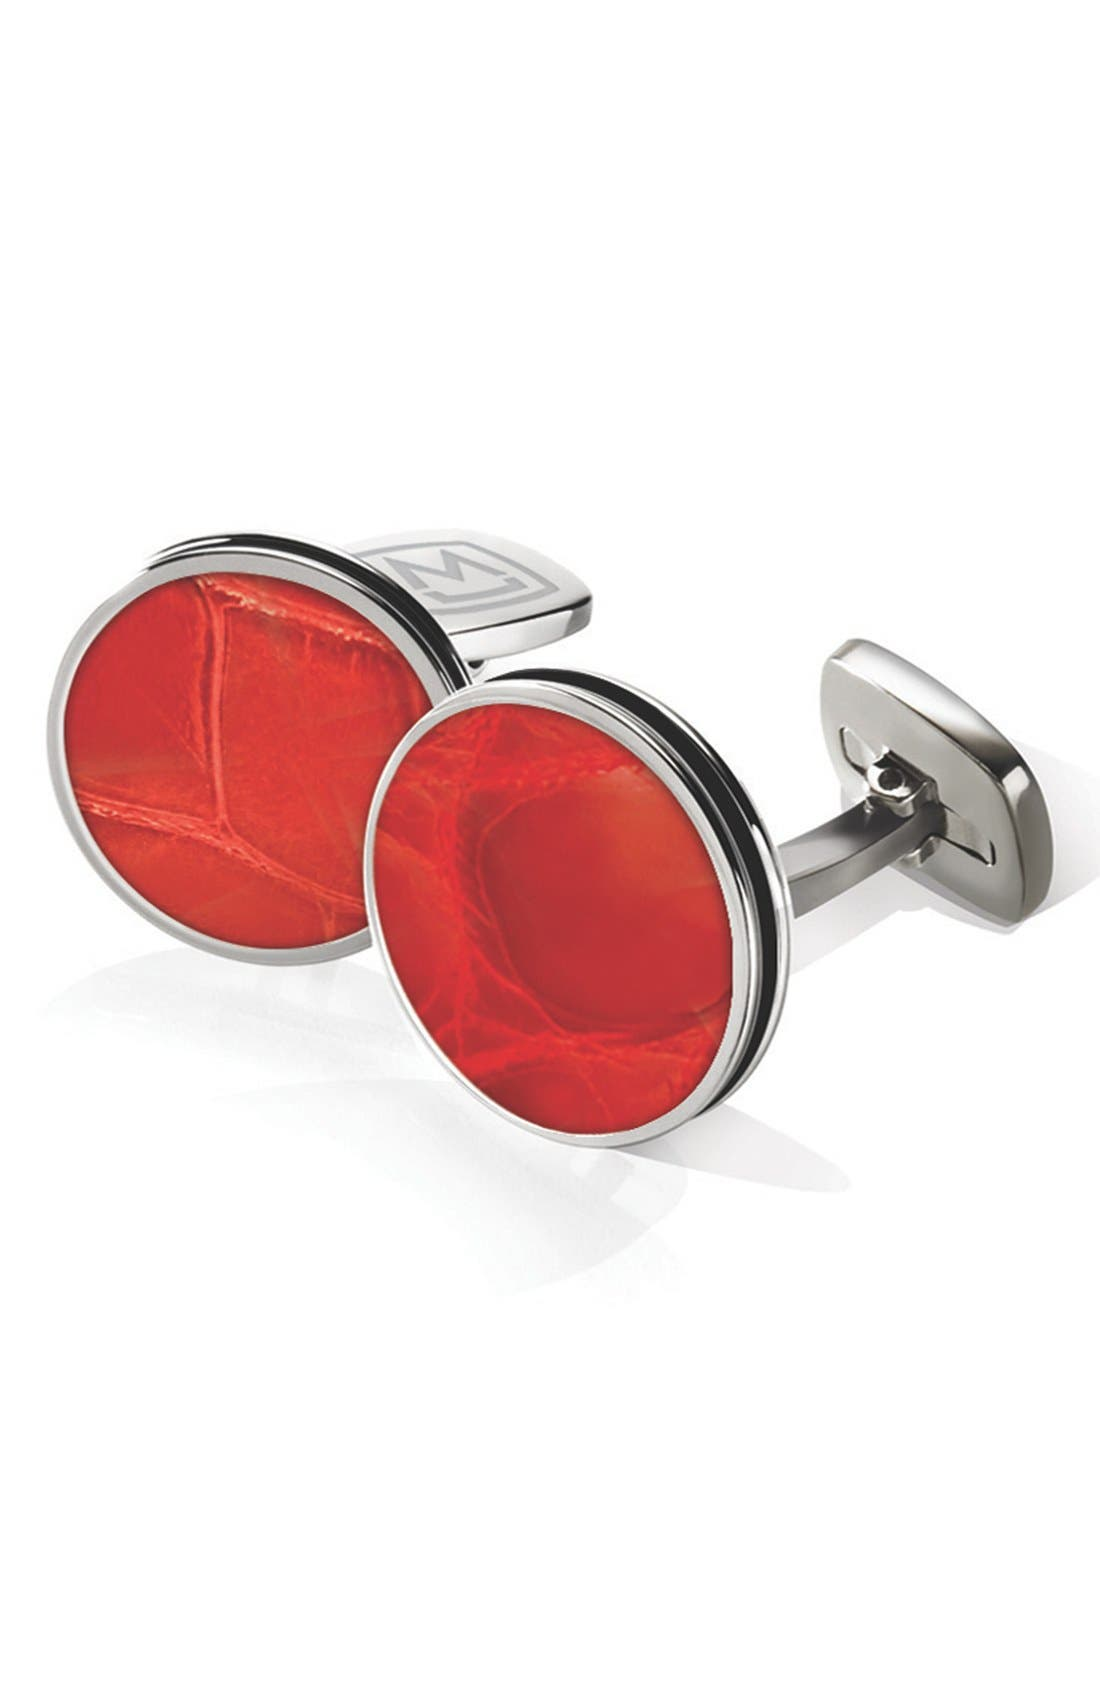 Alligator Cuff Links,                         Main,                         color, Stainless Steel/ Red